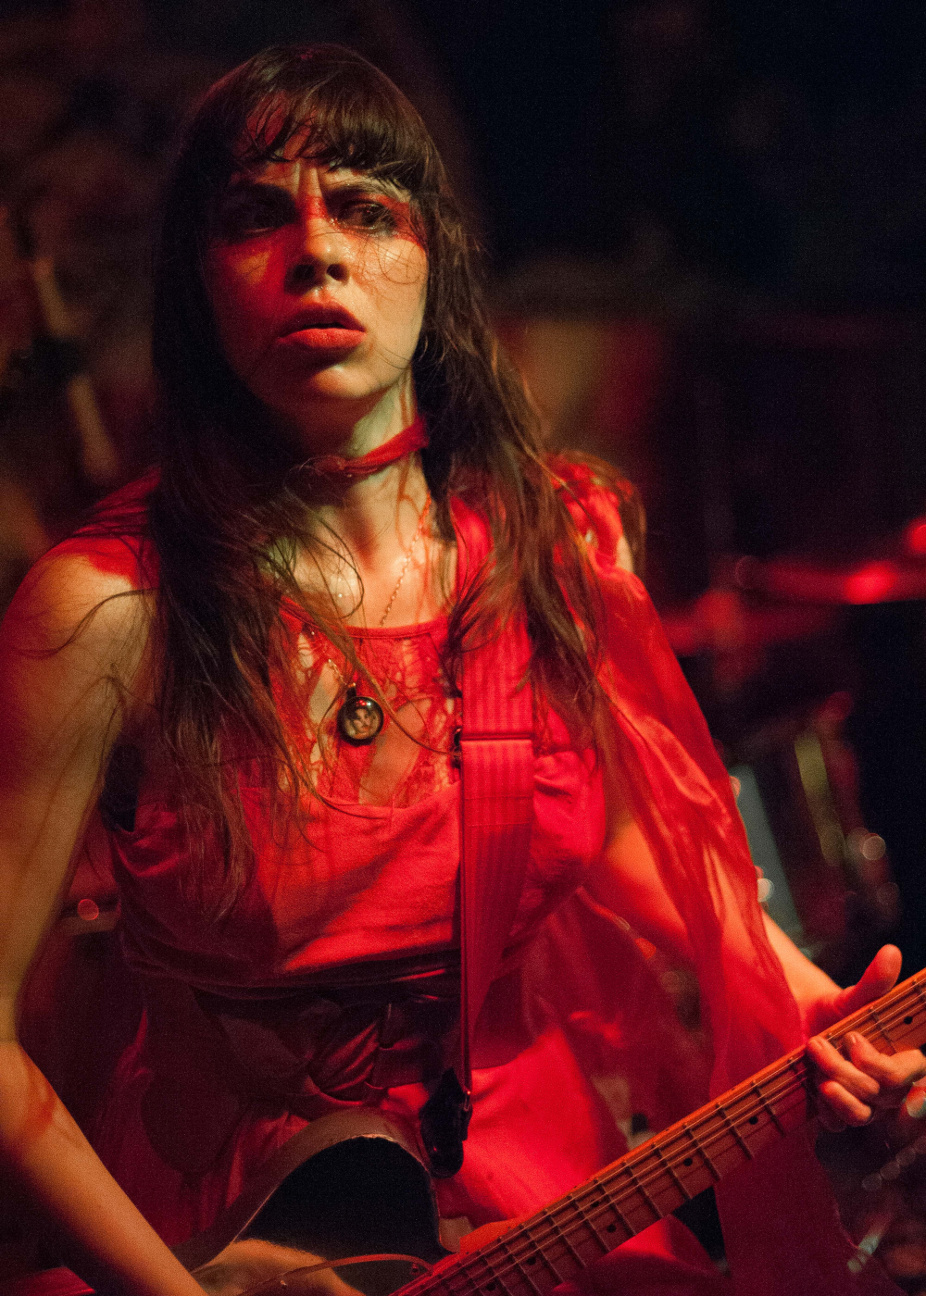 images/Le Butcherettes at Pappy and Harriets/Red Dress